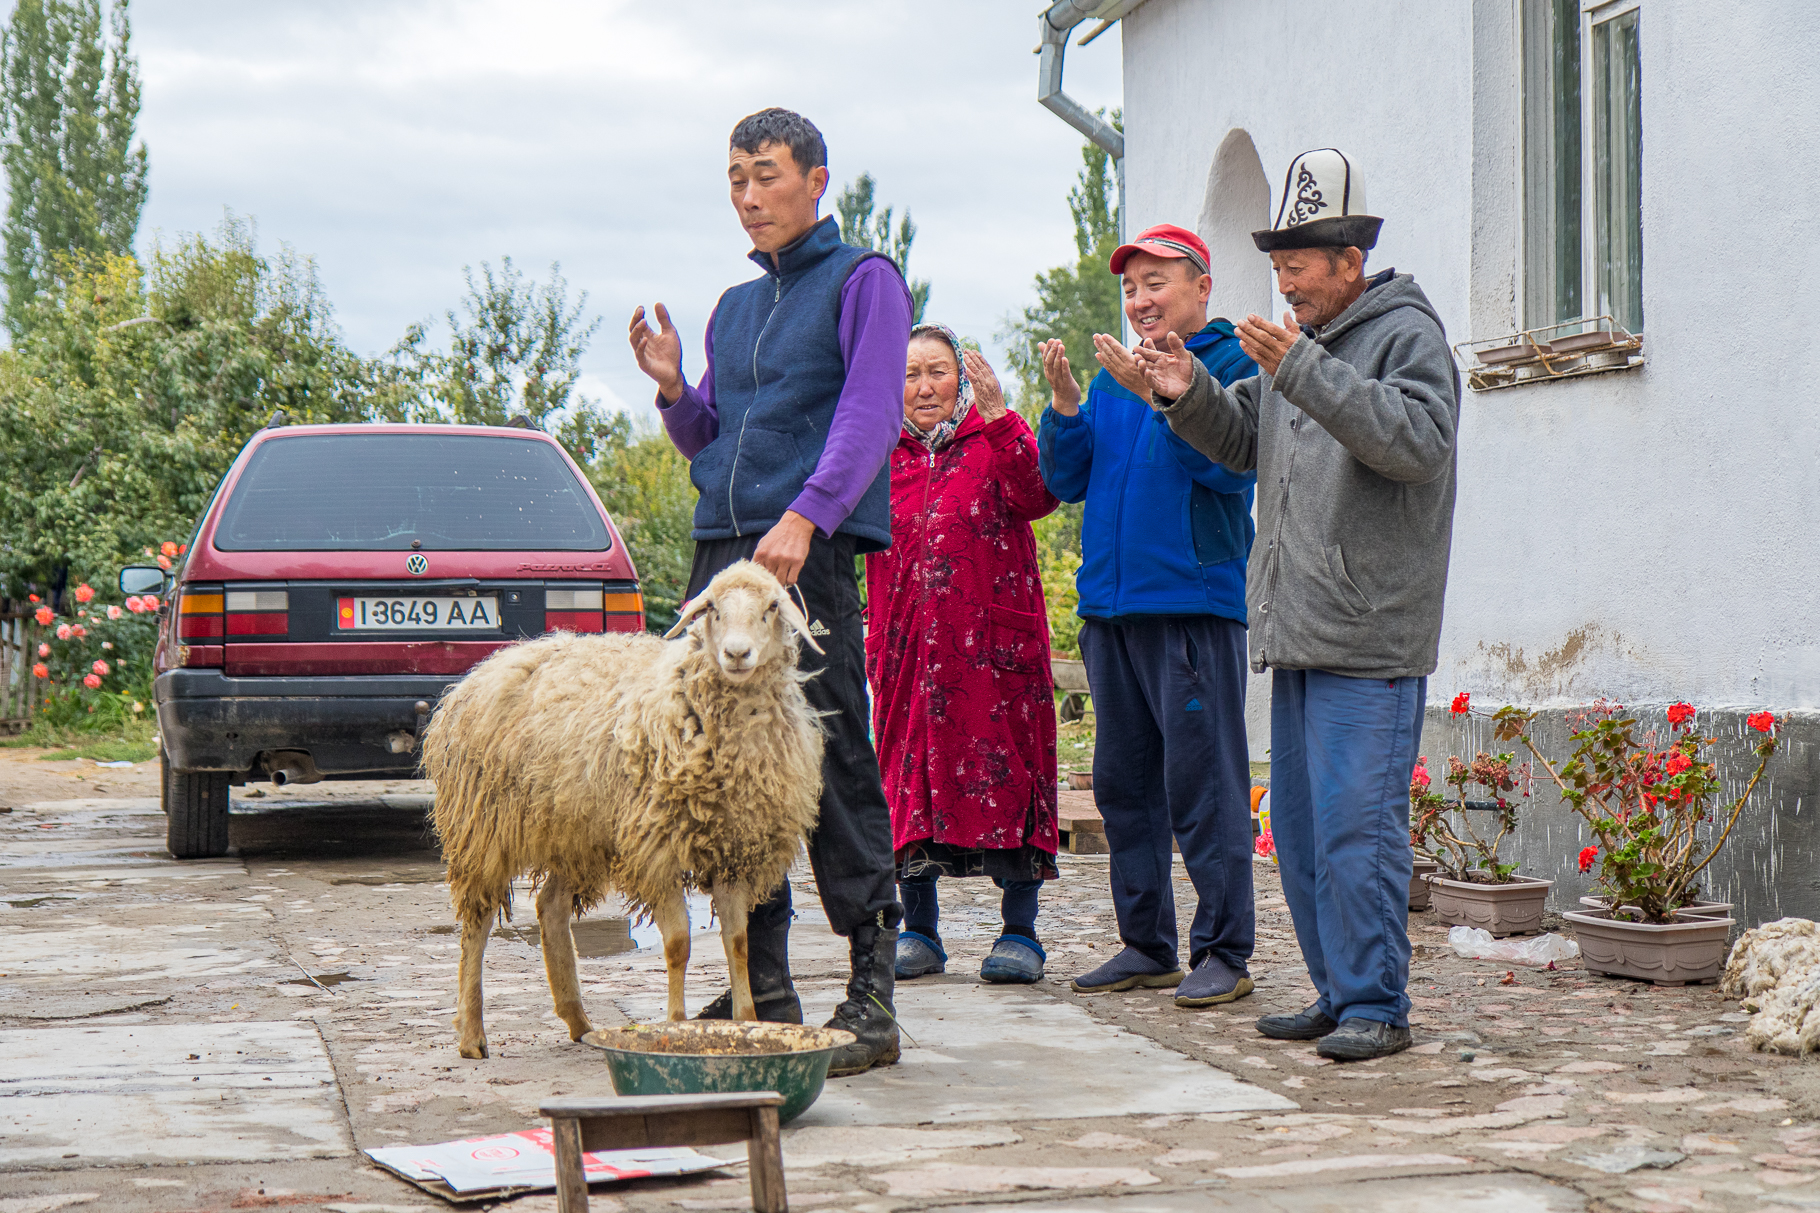 Kyrgyzstan - About first hitchhikes, couchsurfing and a cultural deep dive